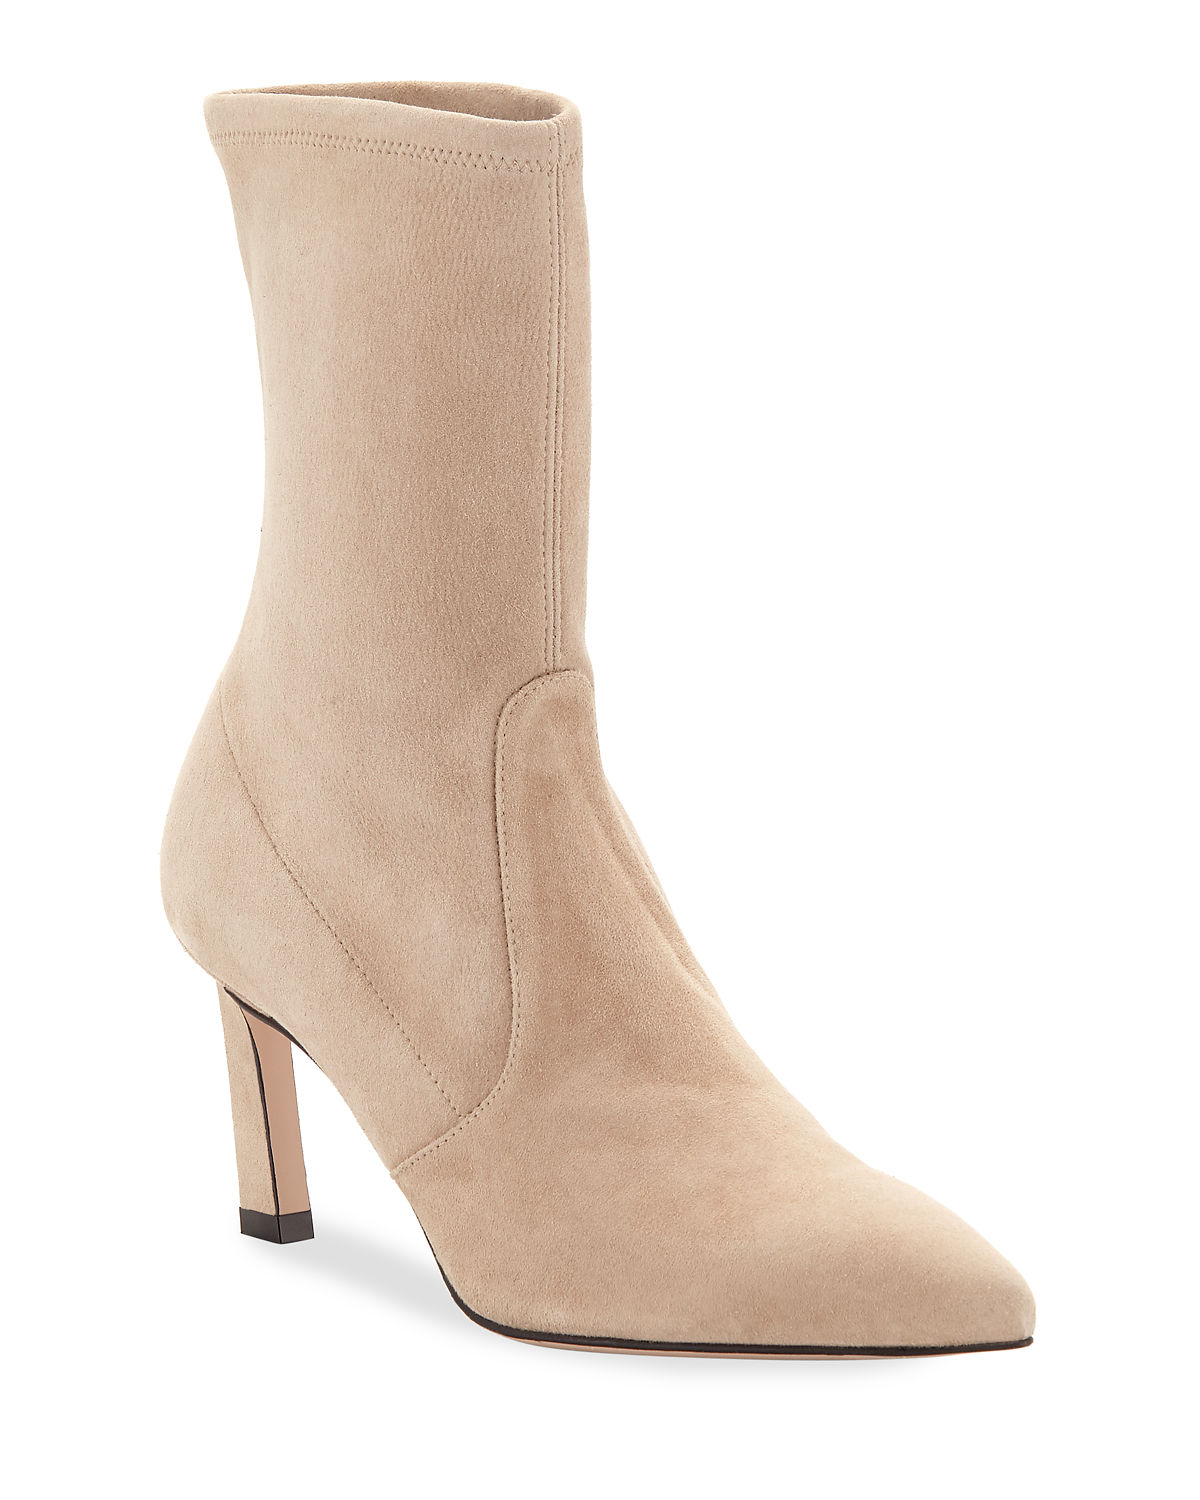 Rapture 75mm Suede Sock Bootie